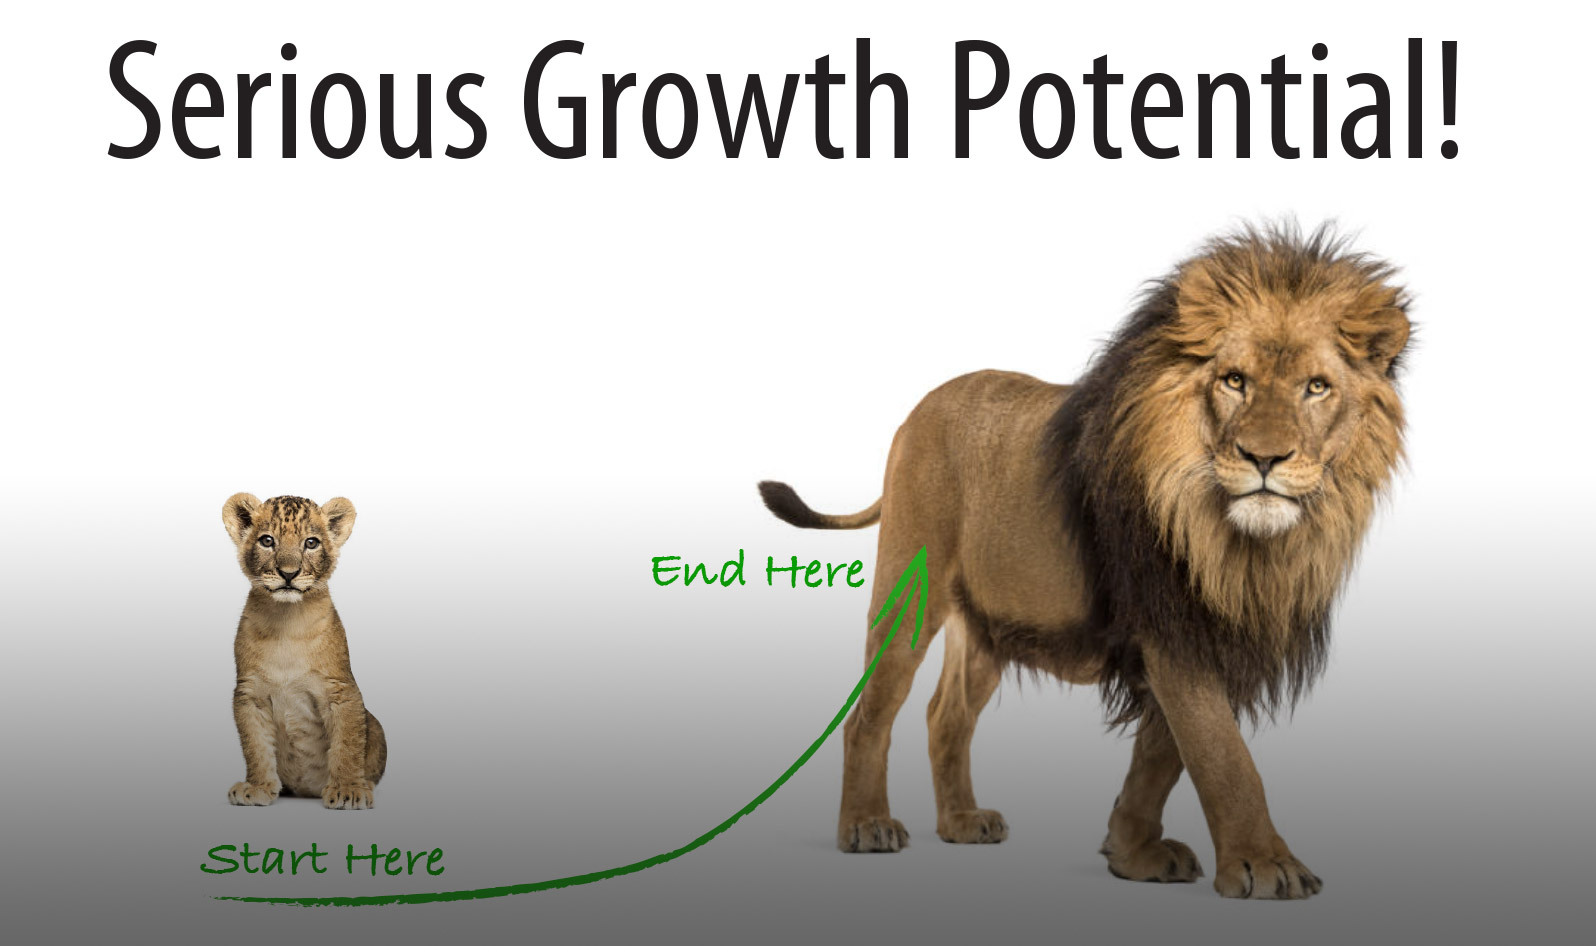 Here S Some Serious Growth Potential Vision Advisors Inc